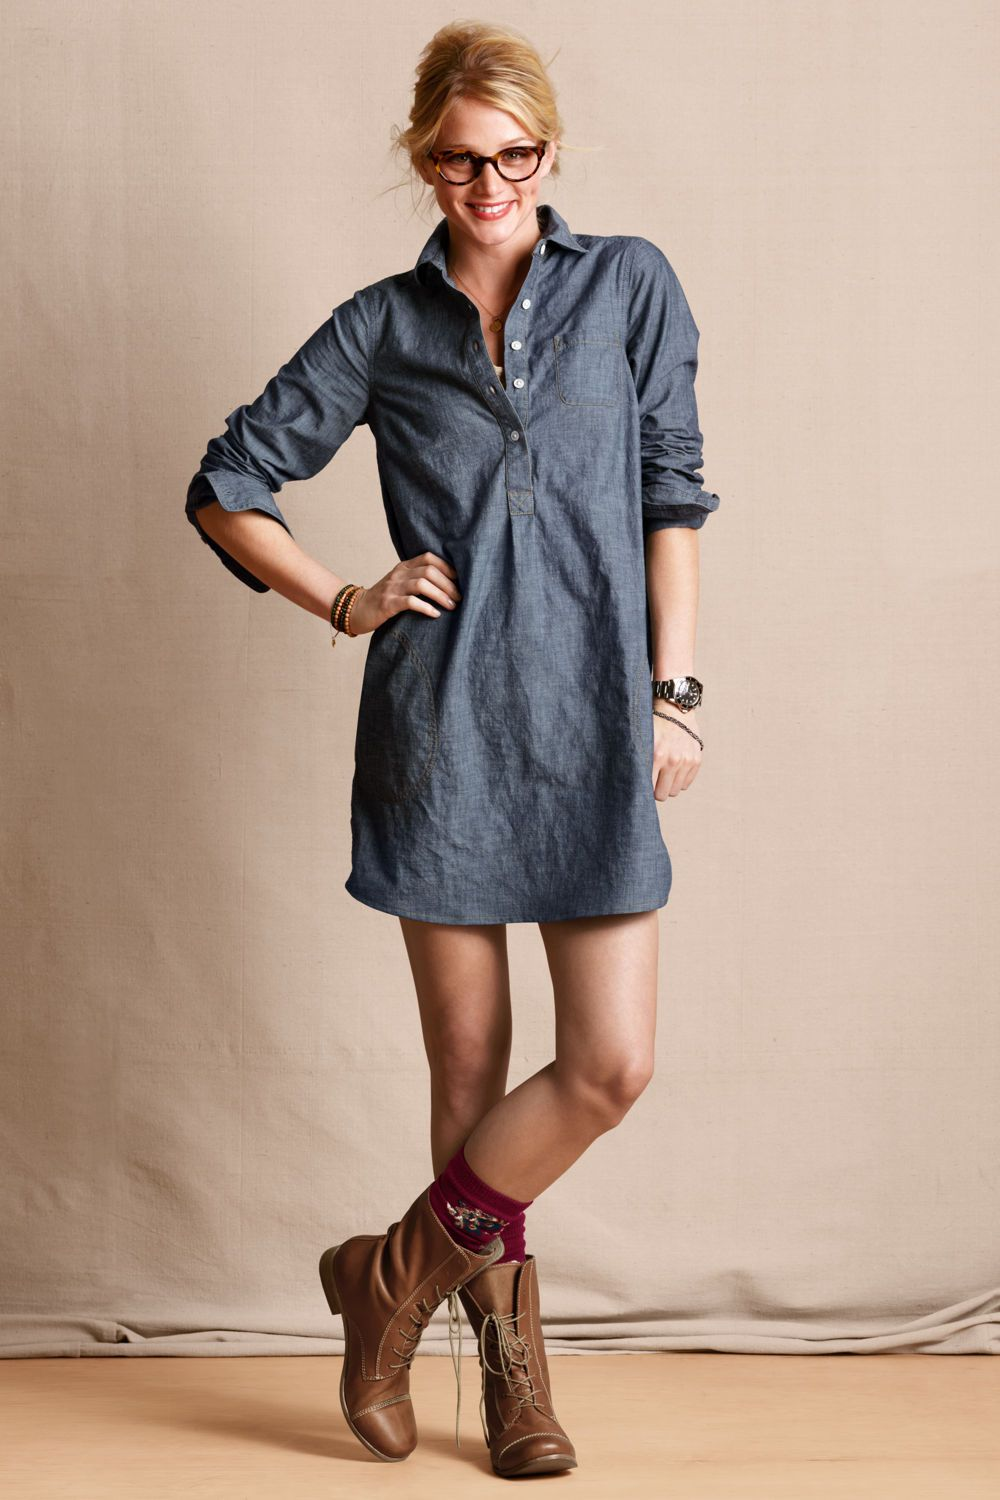 Find and save ideas about Chambray shirt outfits on Pinterest. | See more ideas about Jean shirt outfits, Shirt style and Denim shirt outfits. Women's fashion. Chambray shirt outfits Brighton wearing chambray shirt and leggings outfit. Find this Pin and more on Brighton The Day by Brighton Keller // BrightonTheDay Blog.